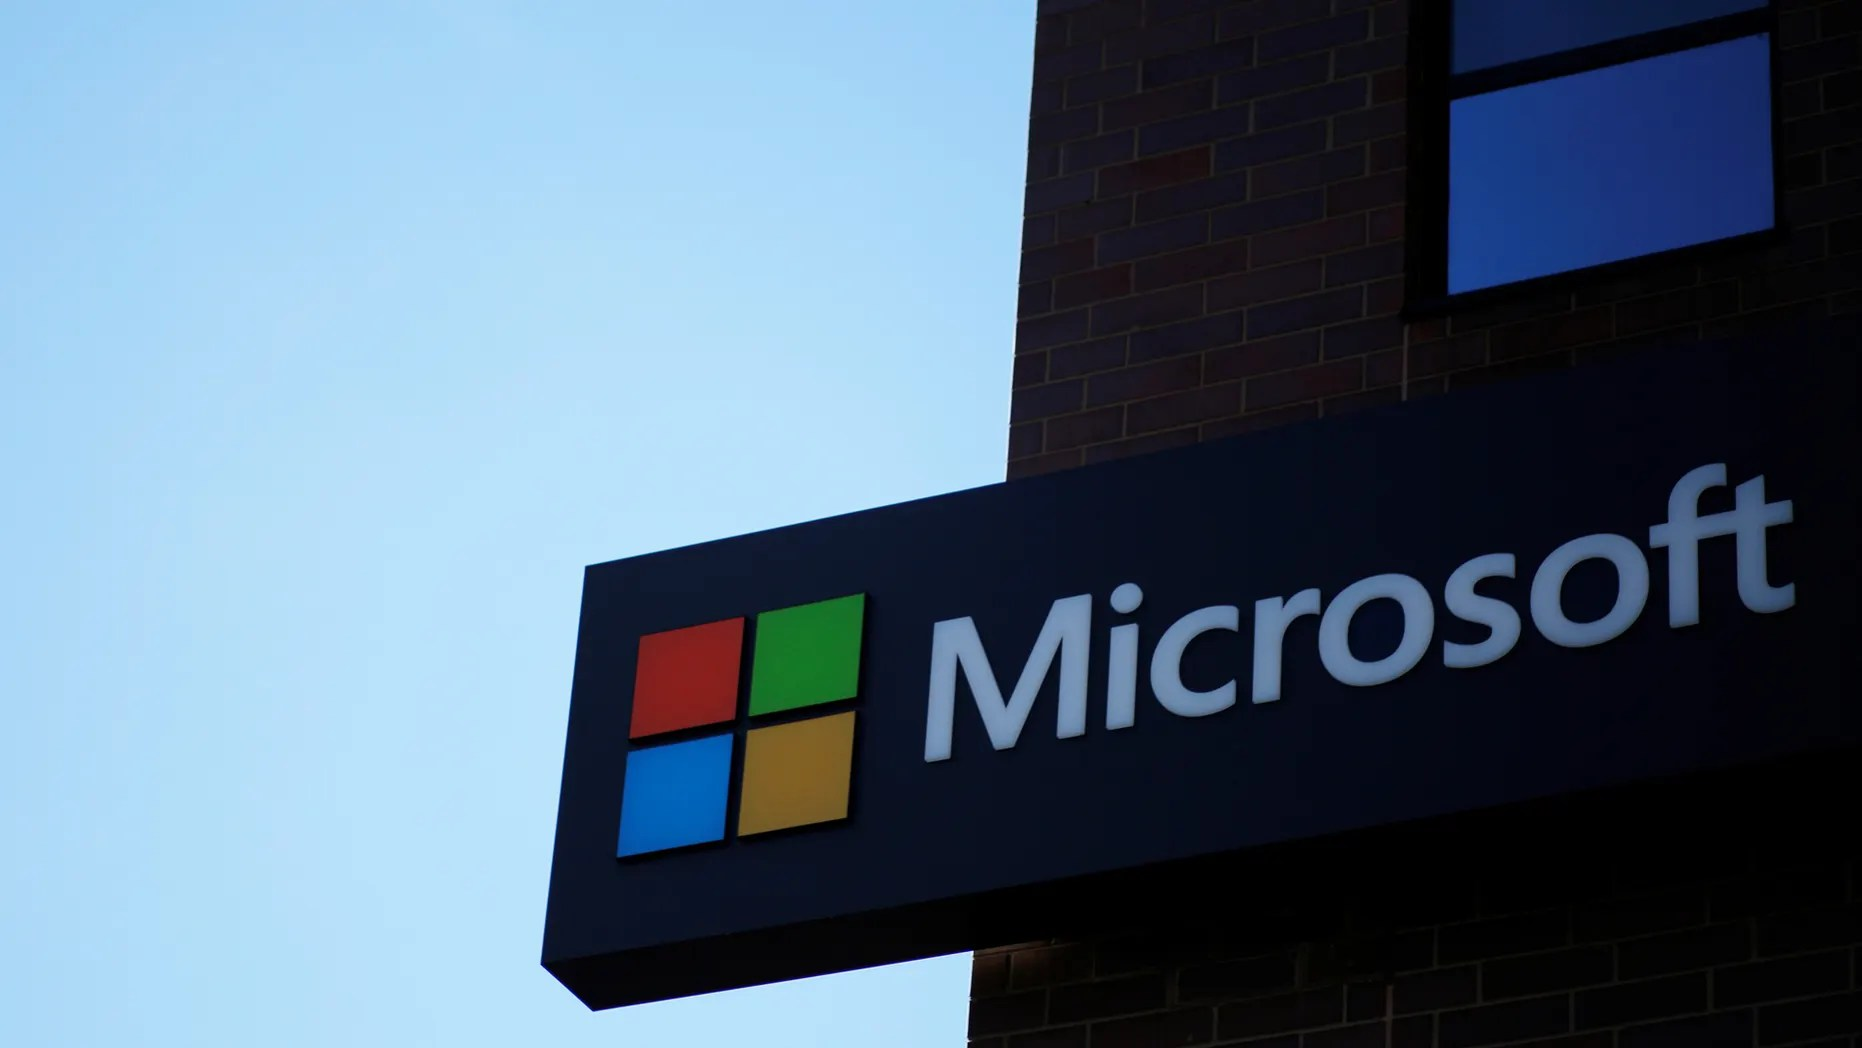 Microsoft Office Windows 7 Microsoft Is Finally Pulling The Plug On Windows 7 How To Save